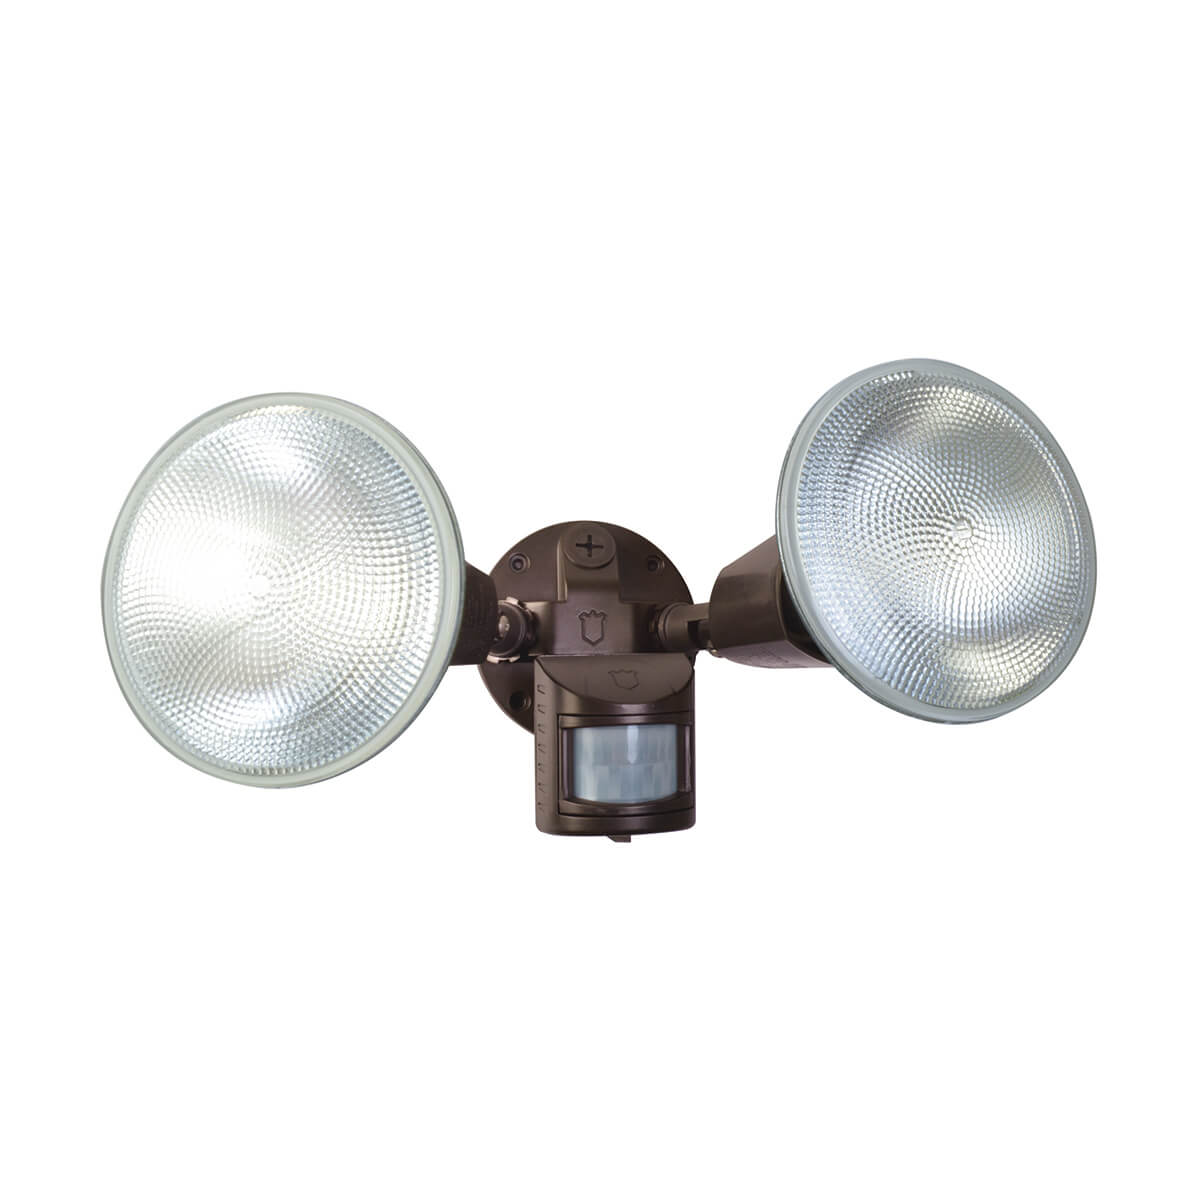 Dual Head 110° Motion Activated Security Light - Brown